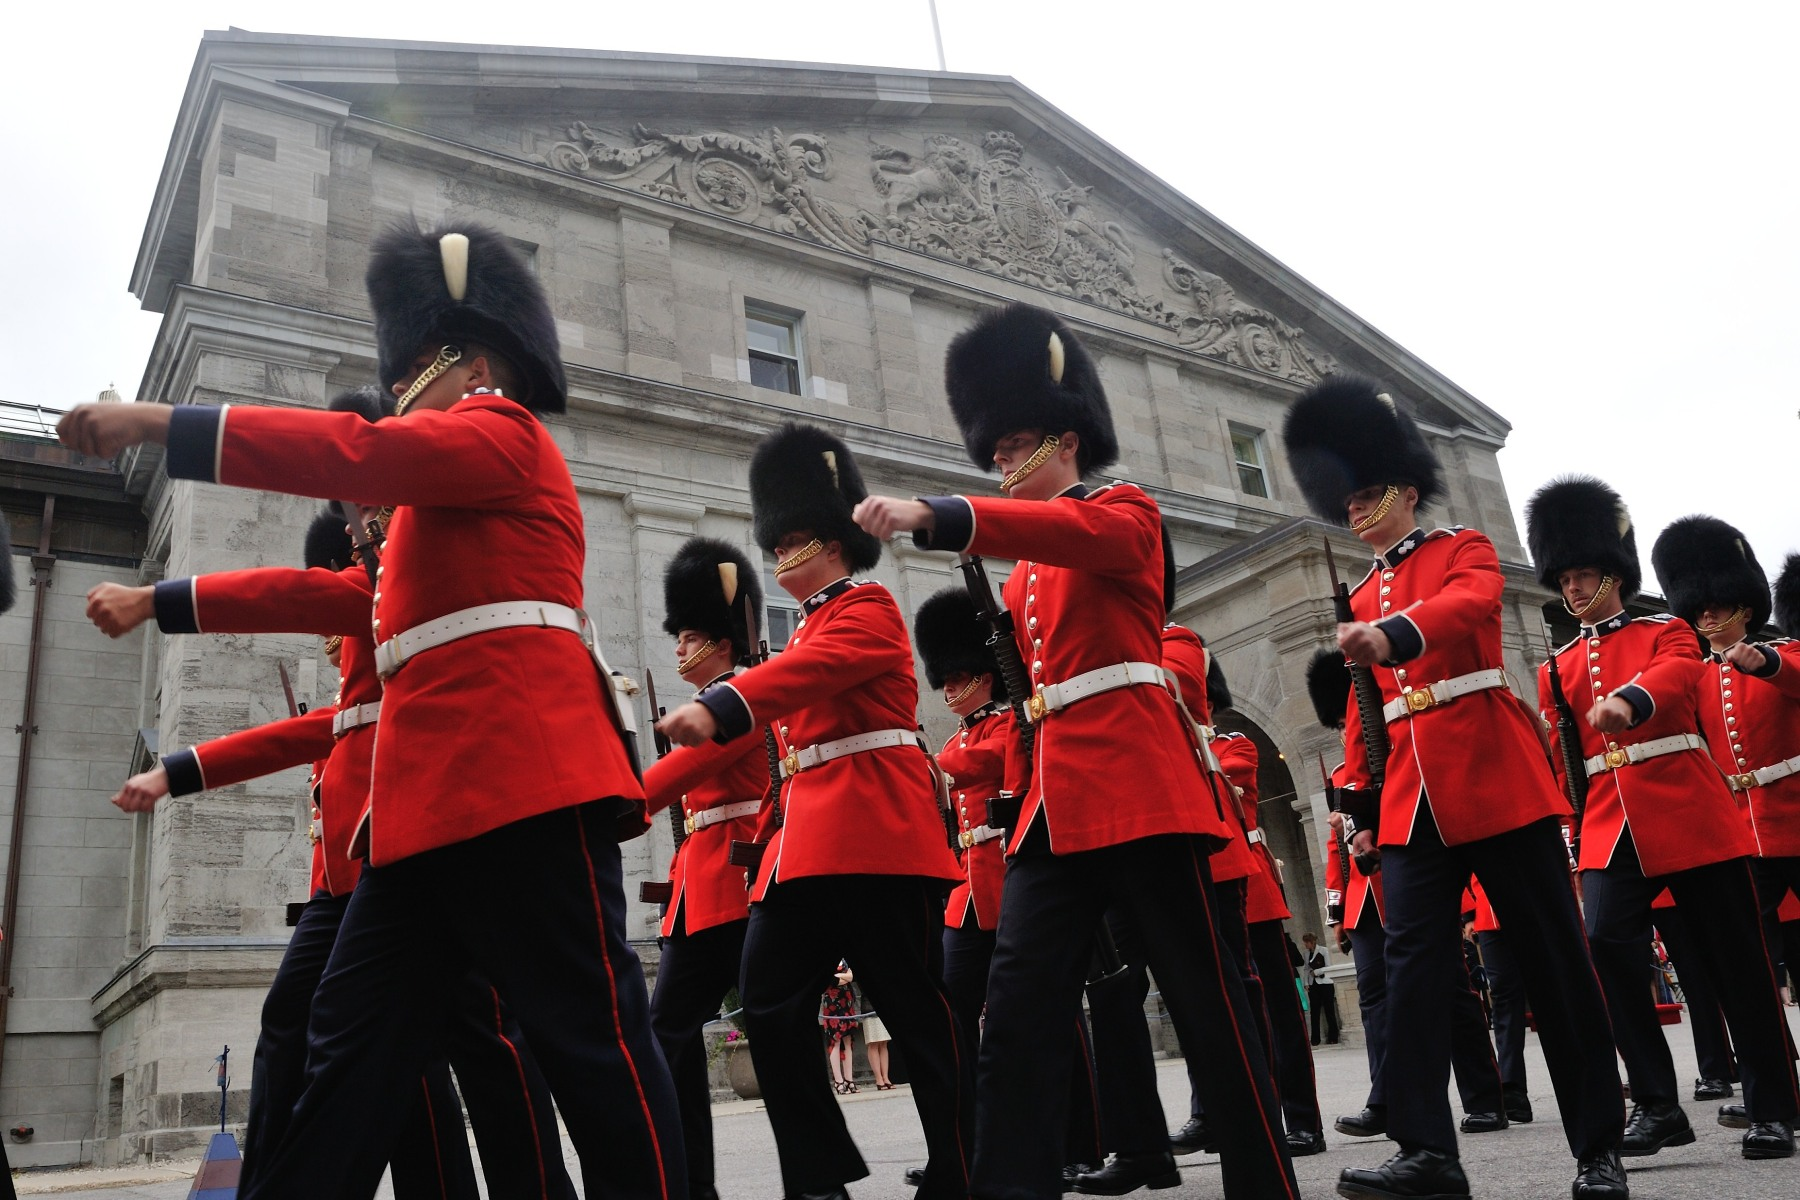 Over the course of the summer, visitors can come to Rideau Hall and witness the pageantry, precision and colour of the Relief of the Sentries, which runs from June 26 to August 26, every hour, on the hour, from 9 a.m. to 5 p.m.